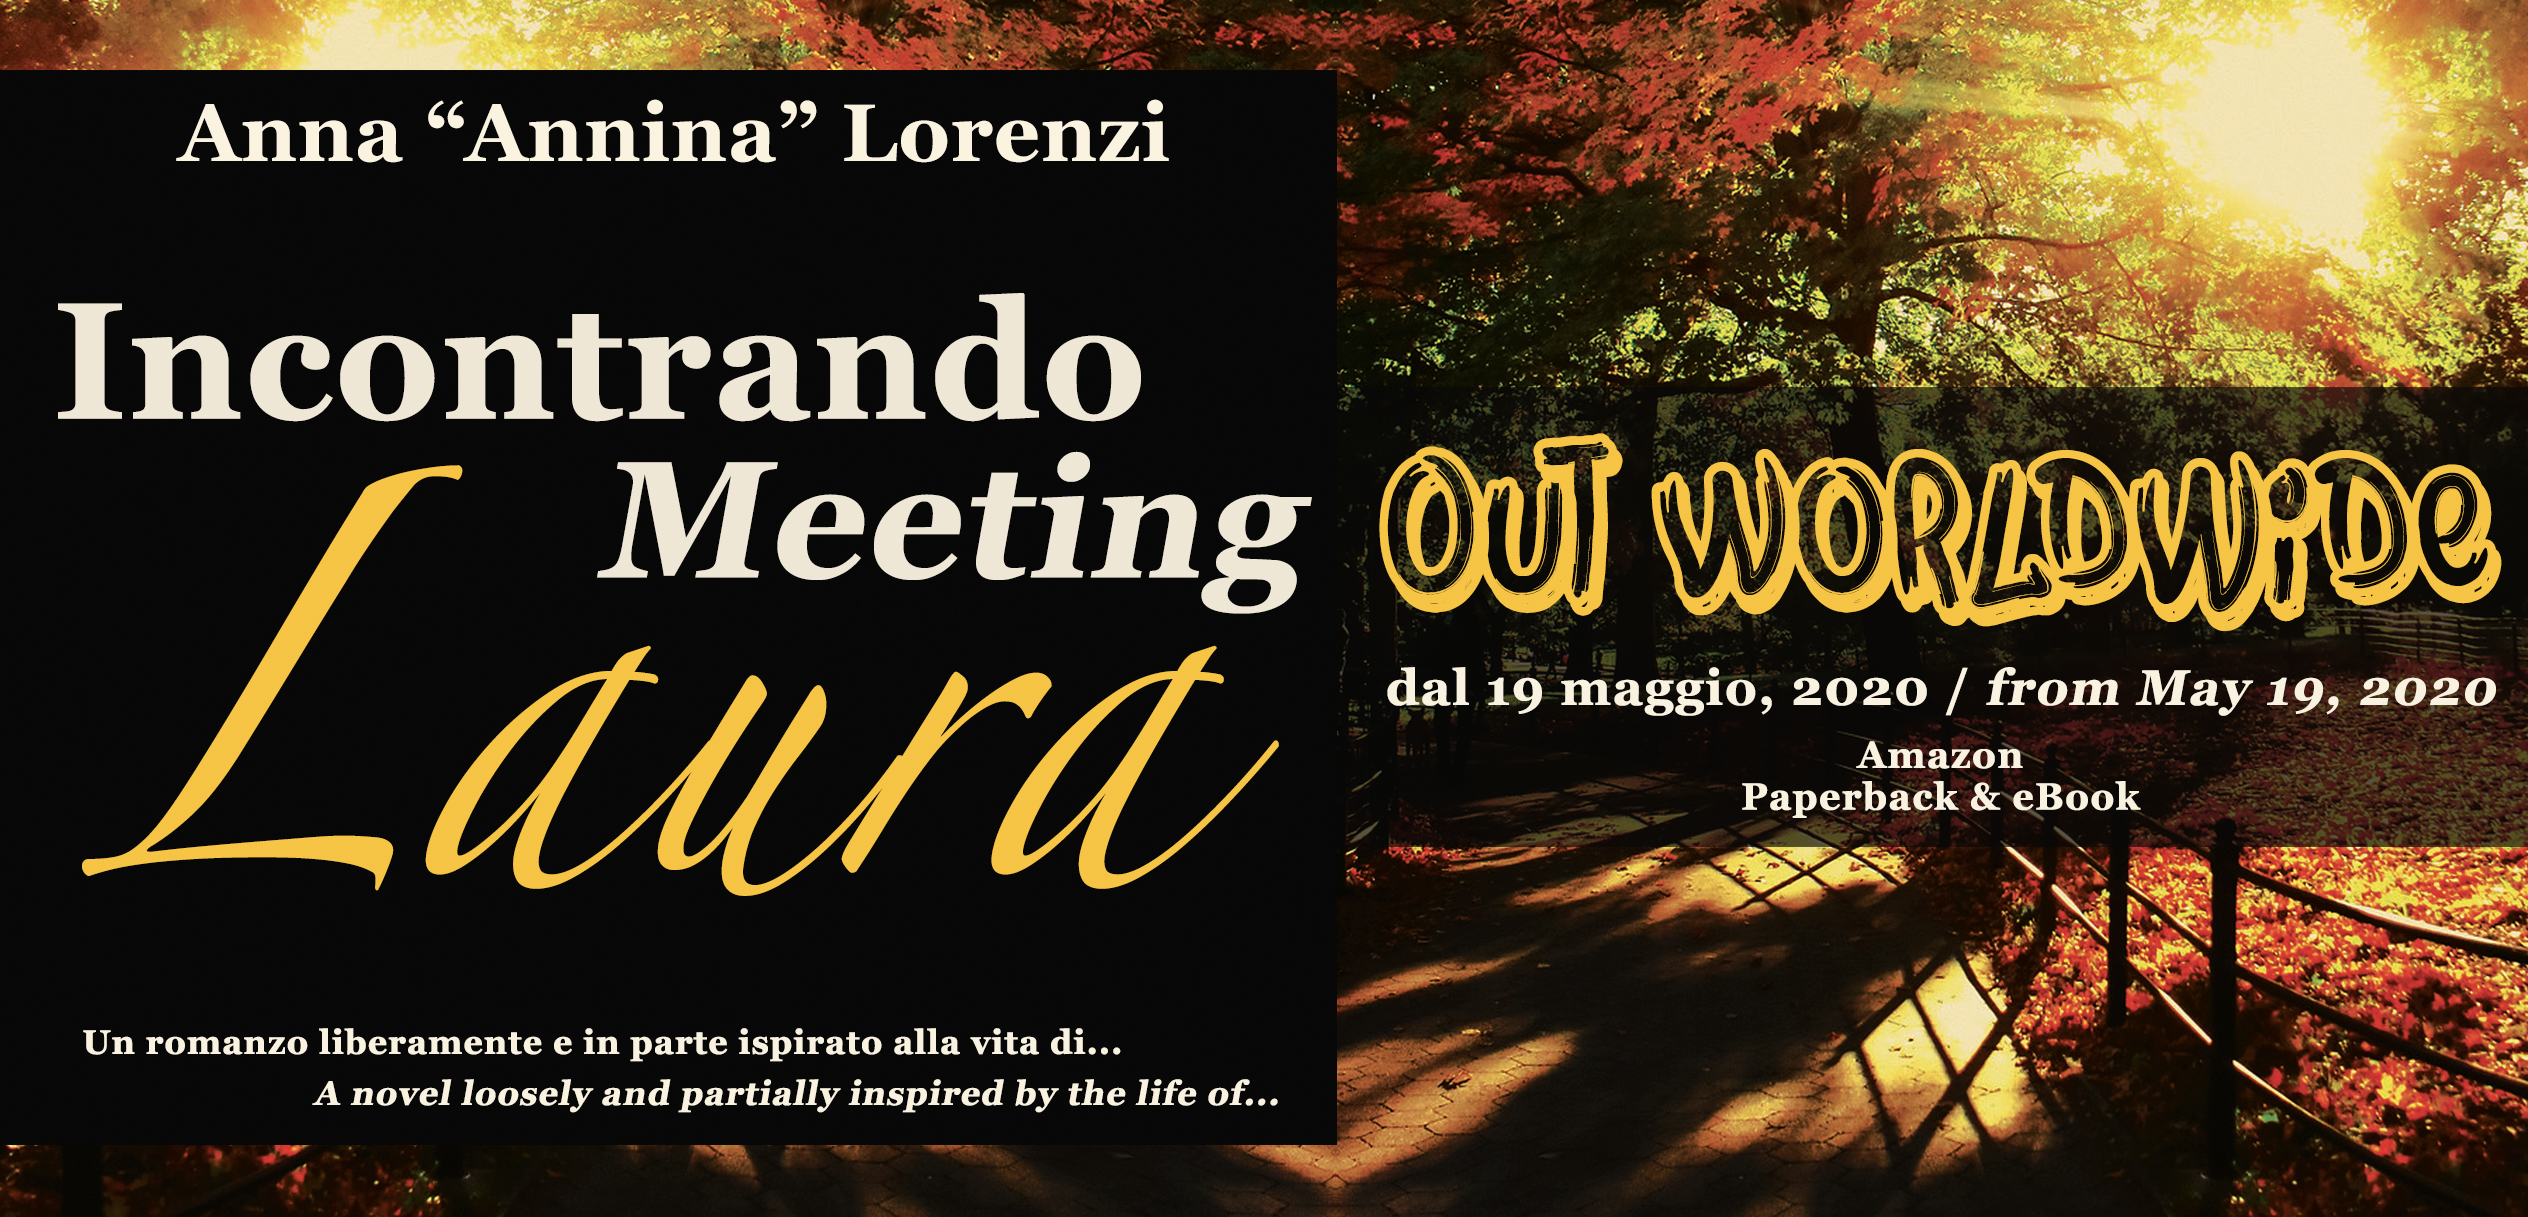 Incontrando/Meeting Laura - Un romanzo... / A novel...